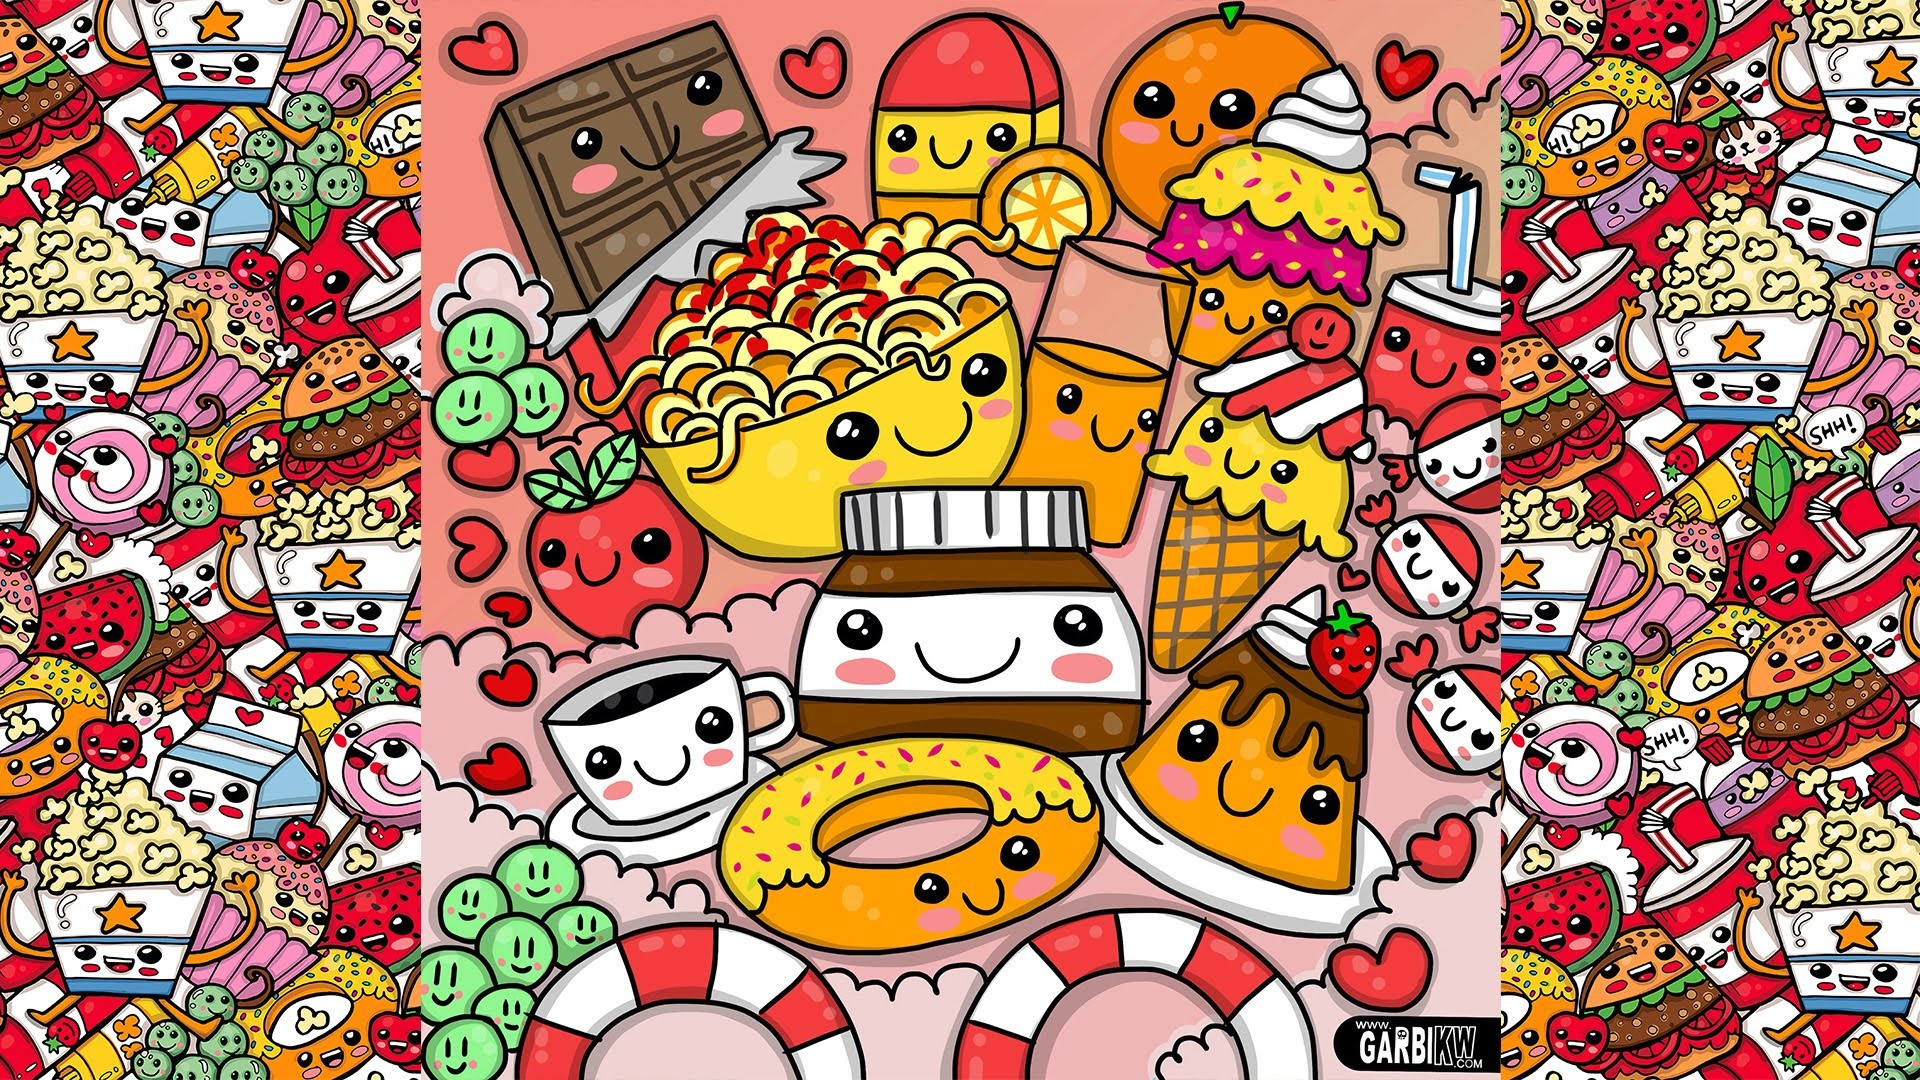 Cute cartoon food wallpapers 67 images - Kawaii food wallpaper ...